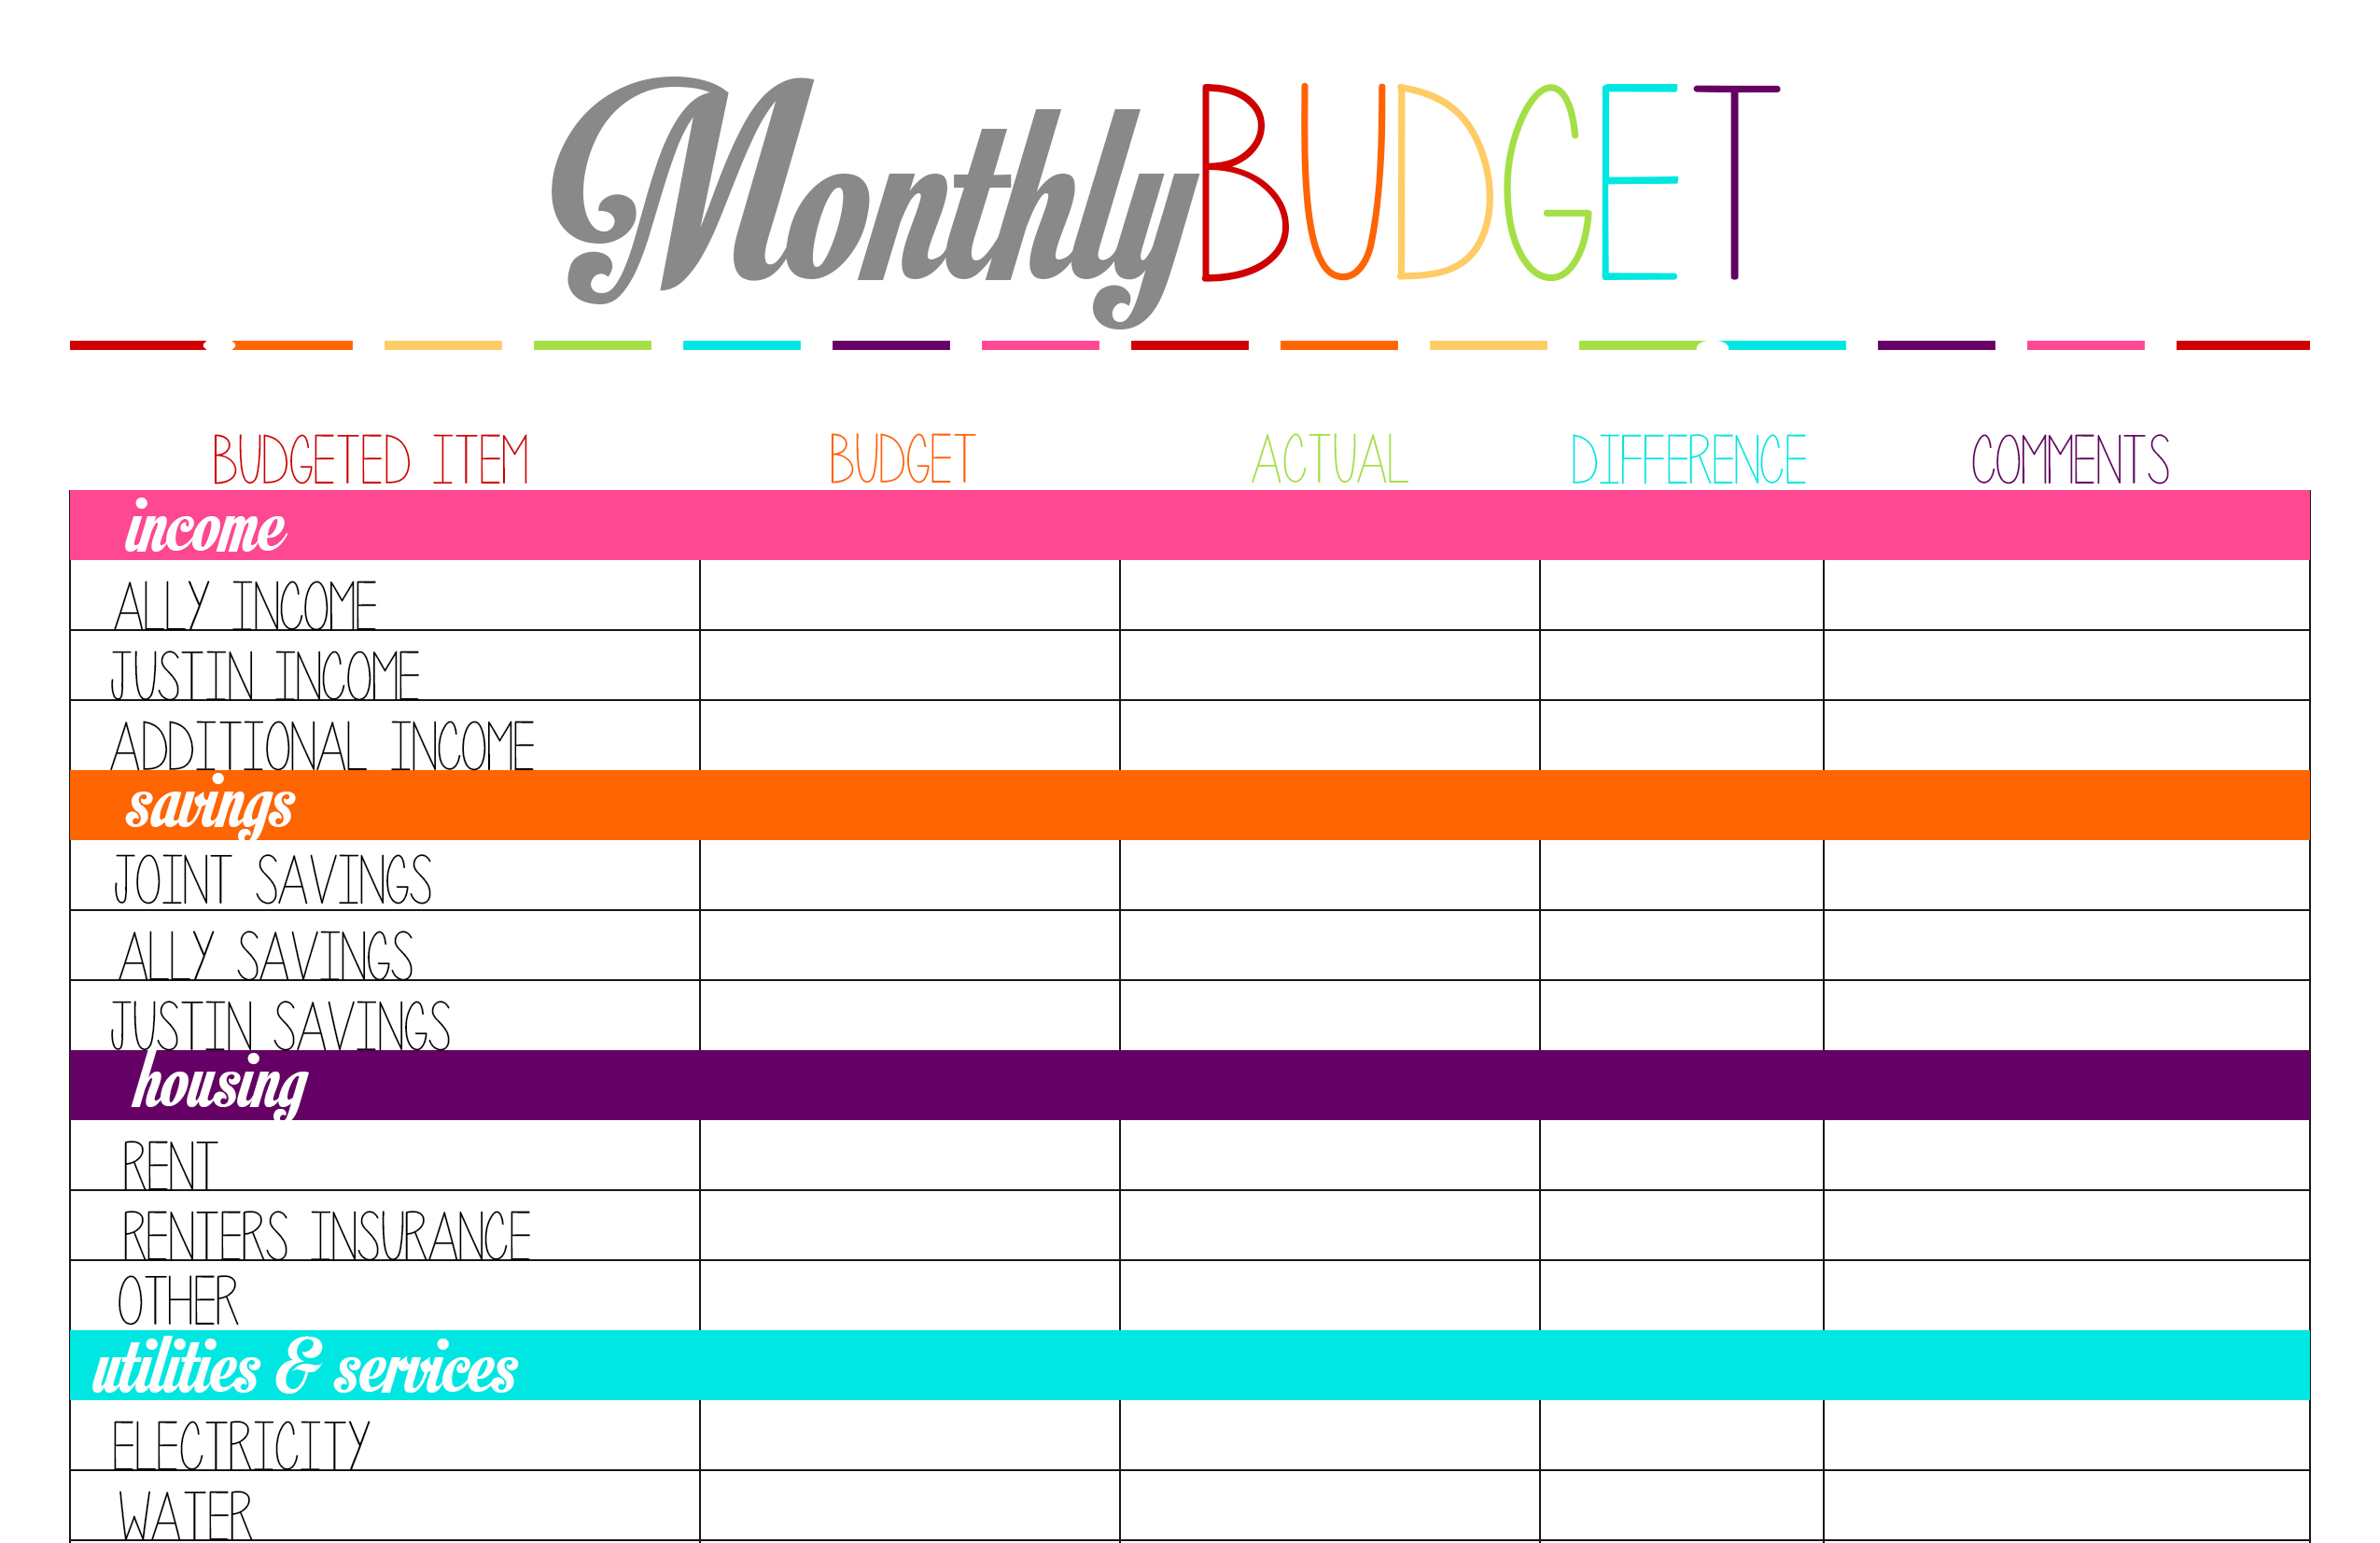 printableepostpic201503freeprintable – Budget Plan Worksheet